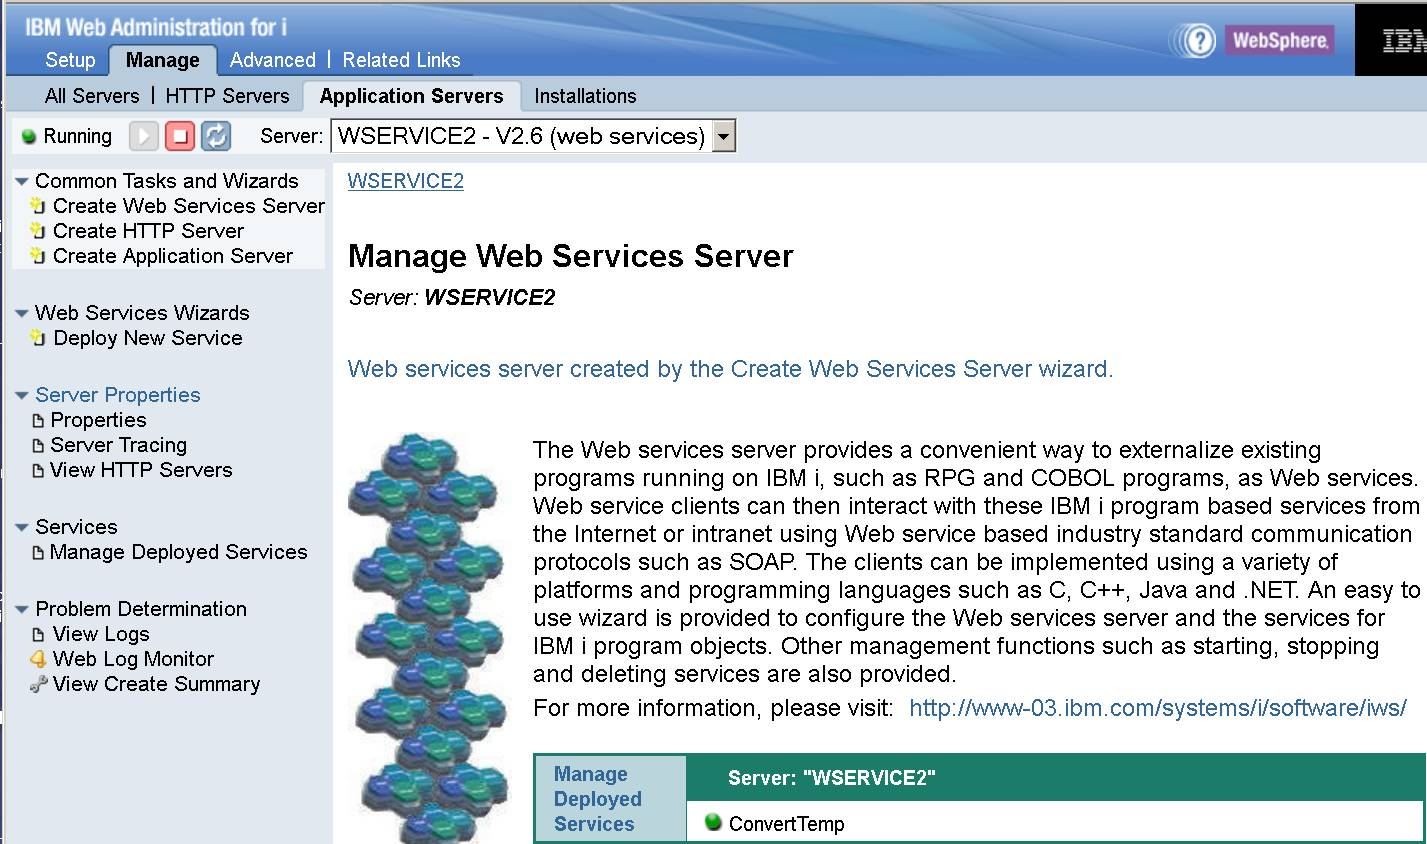 Part 2: Building a REST service with integrated web services